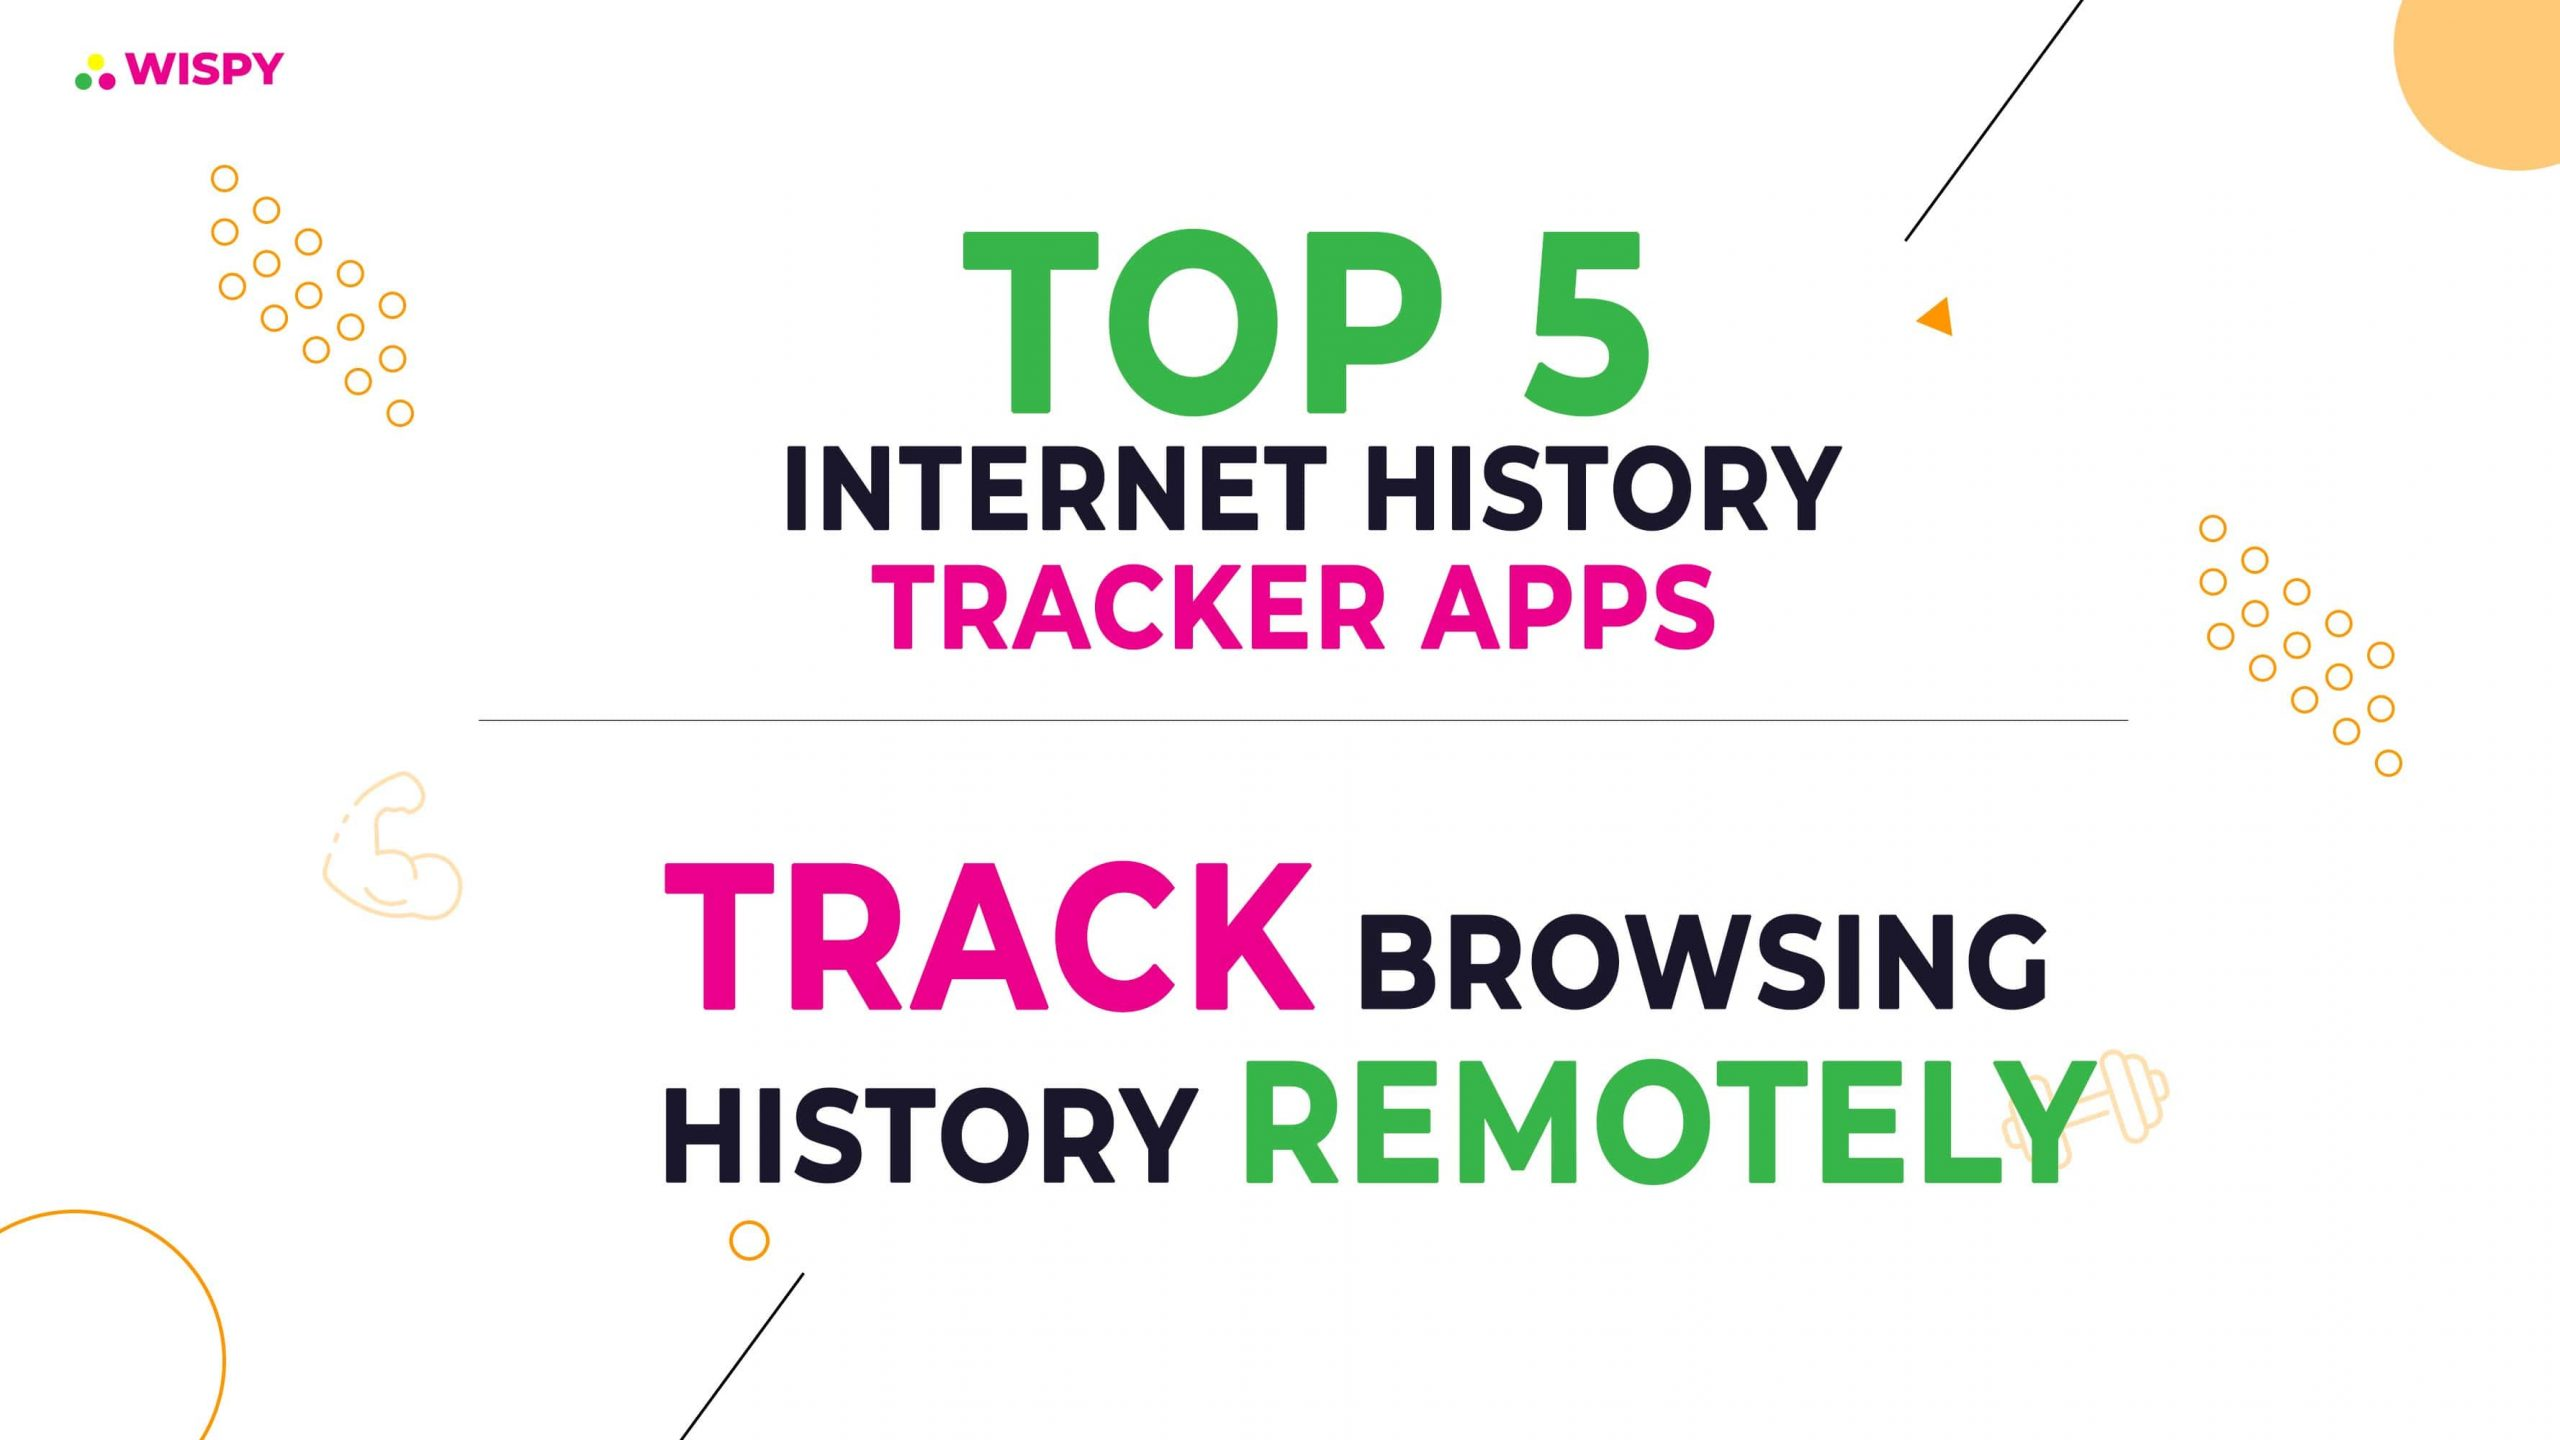 Top 5 Internet History Tracker Apps - Track Browsing History Remotely: